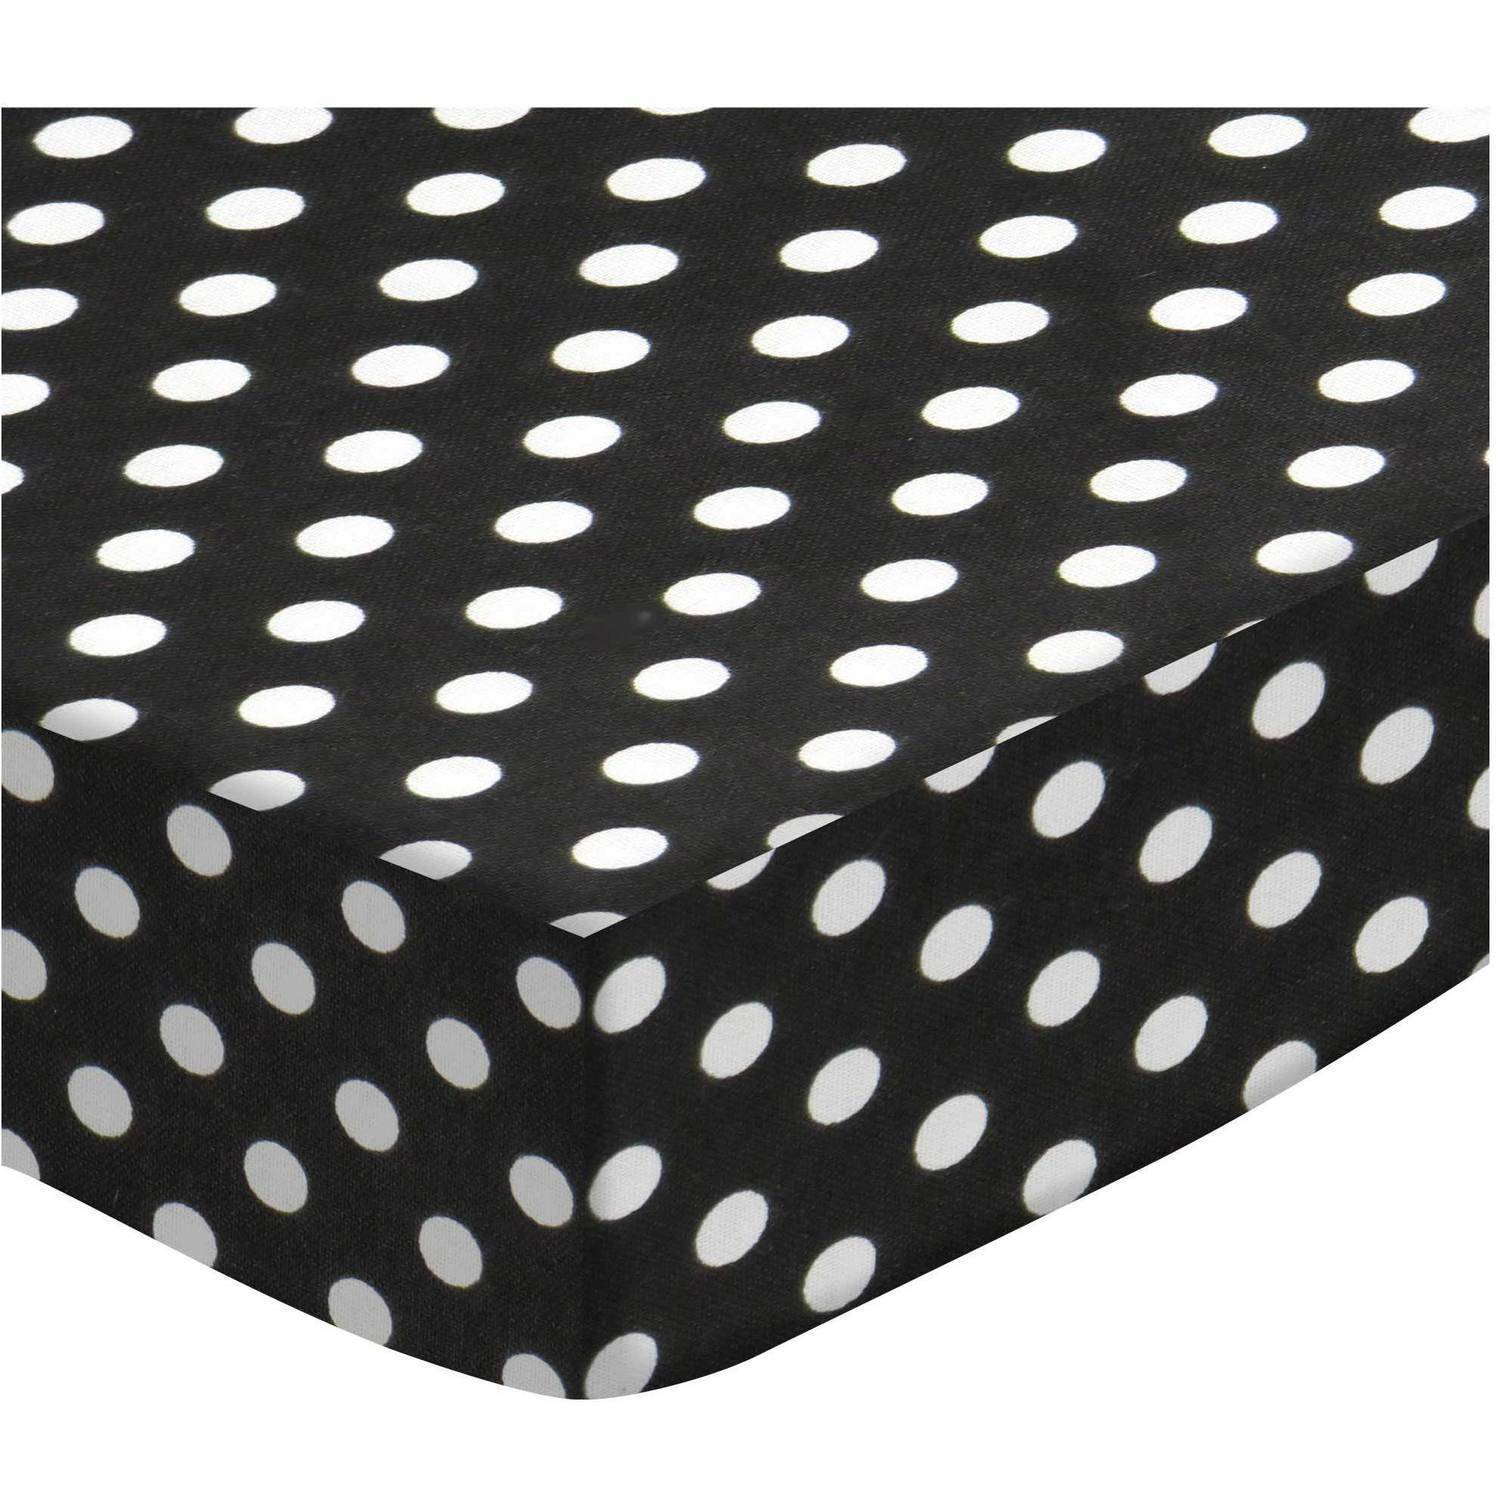 SheetWorld Fitted Crib / Toddler Sheet - Primary Polka Dots Black Woven